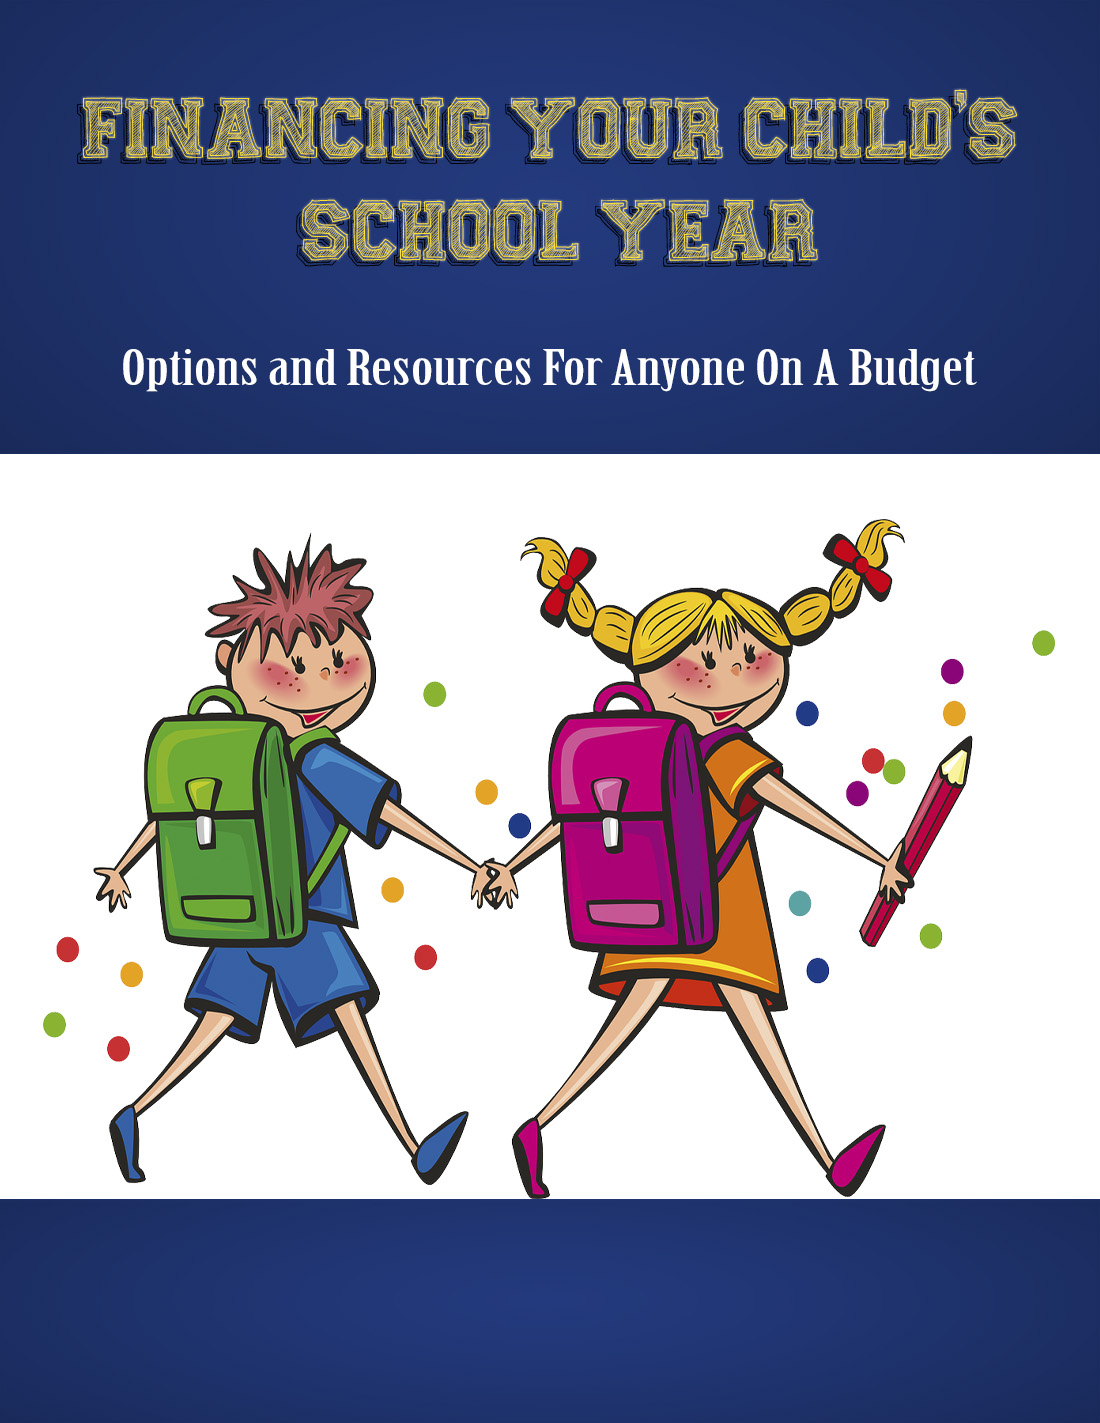 Financing Your Child's School Year (Options And Resources For Anyone On A Budget) Ebook's Ebook Image